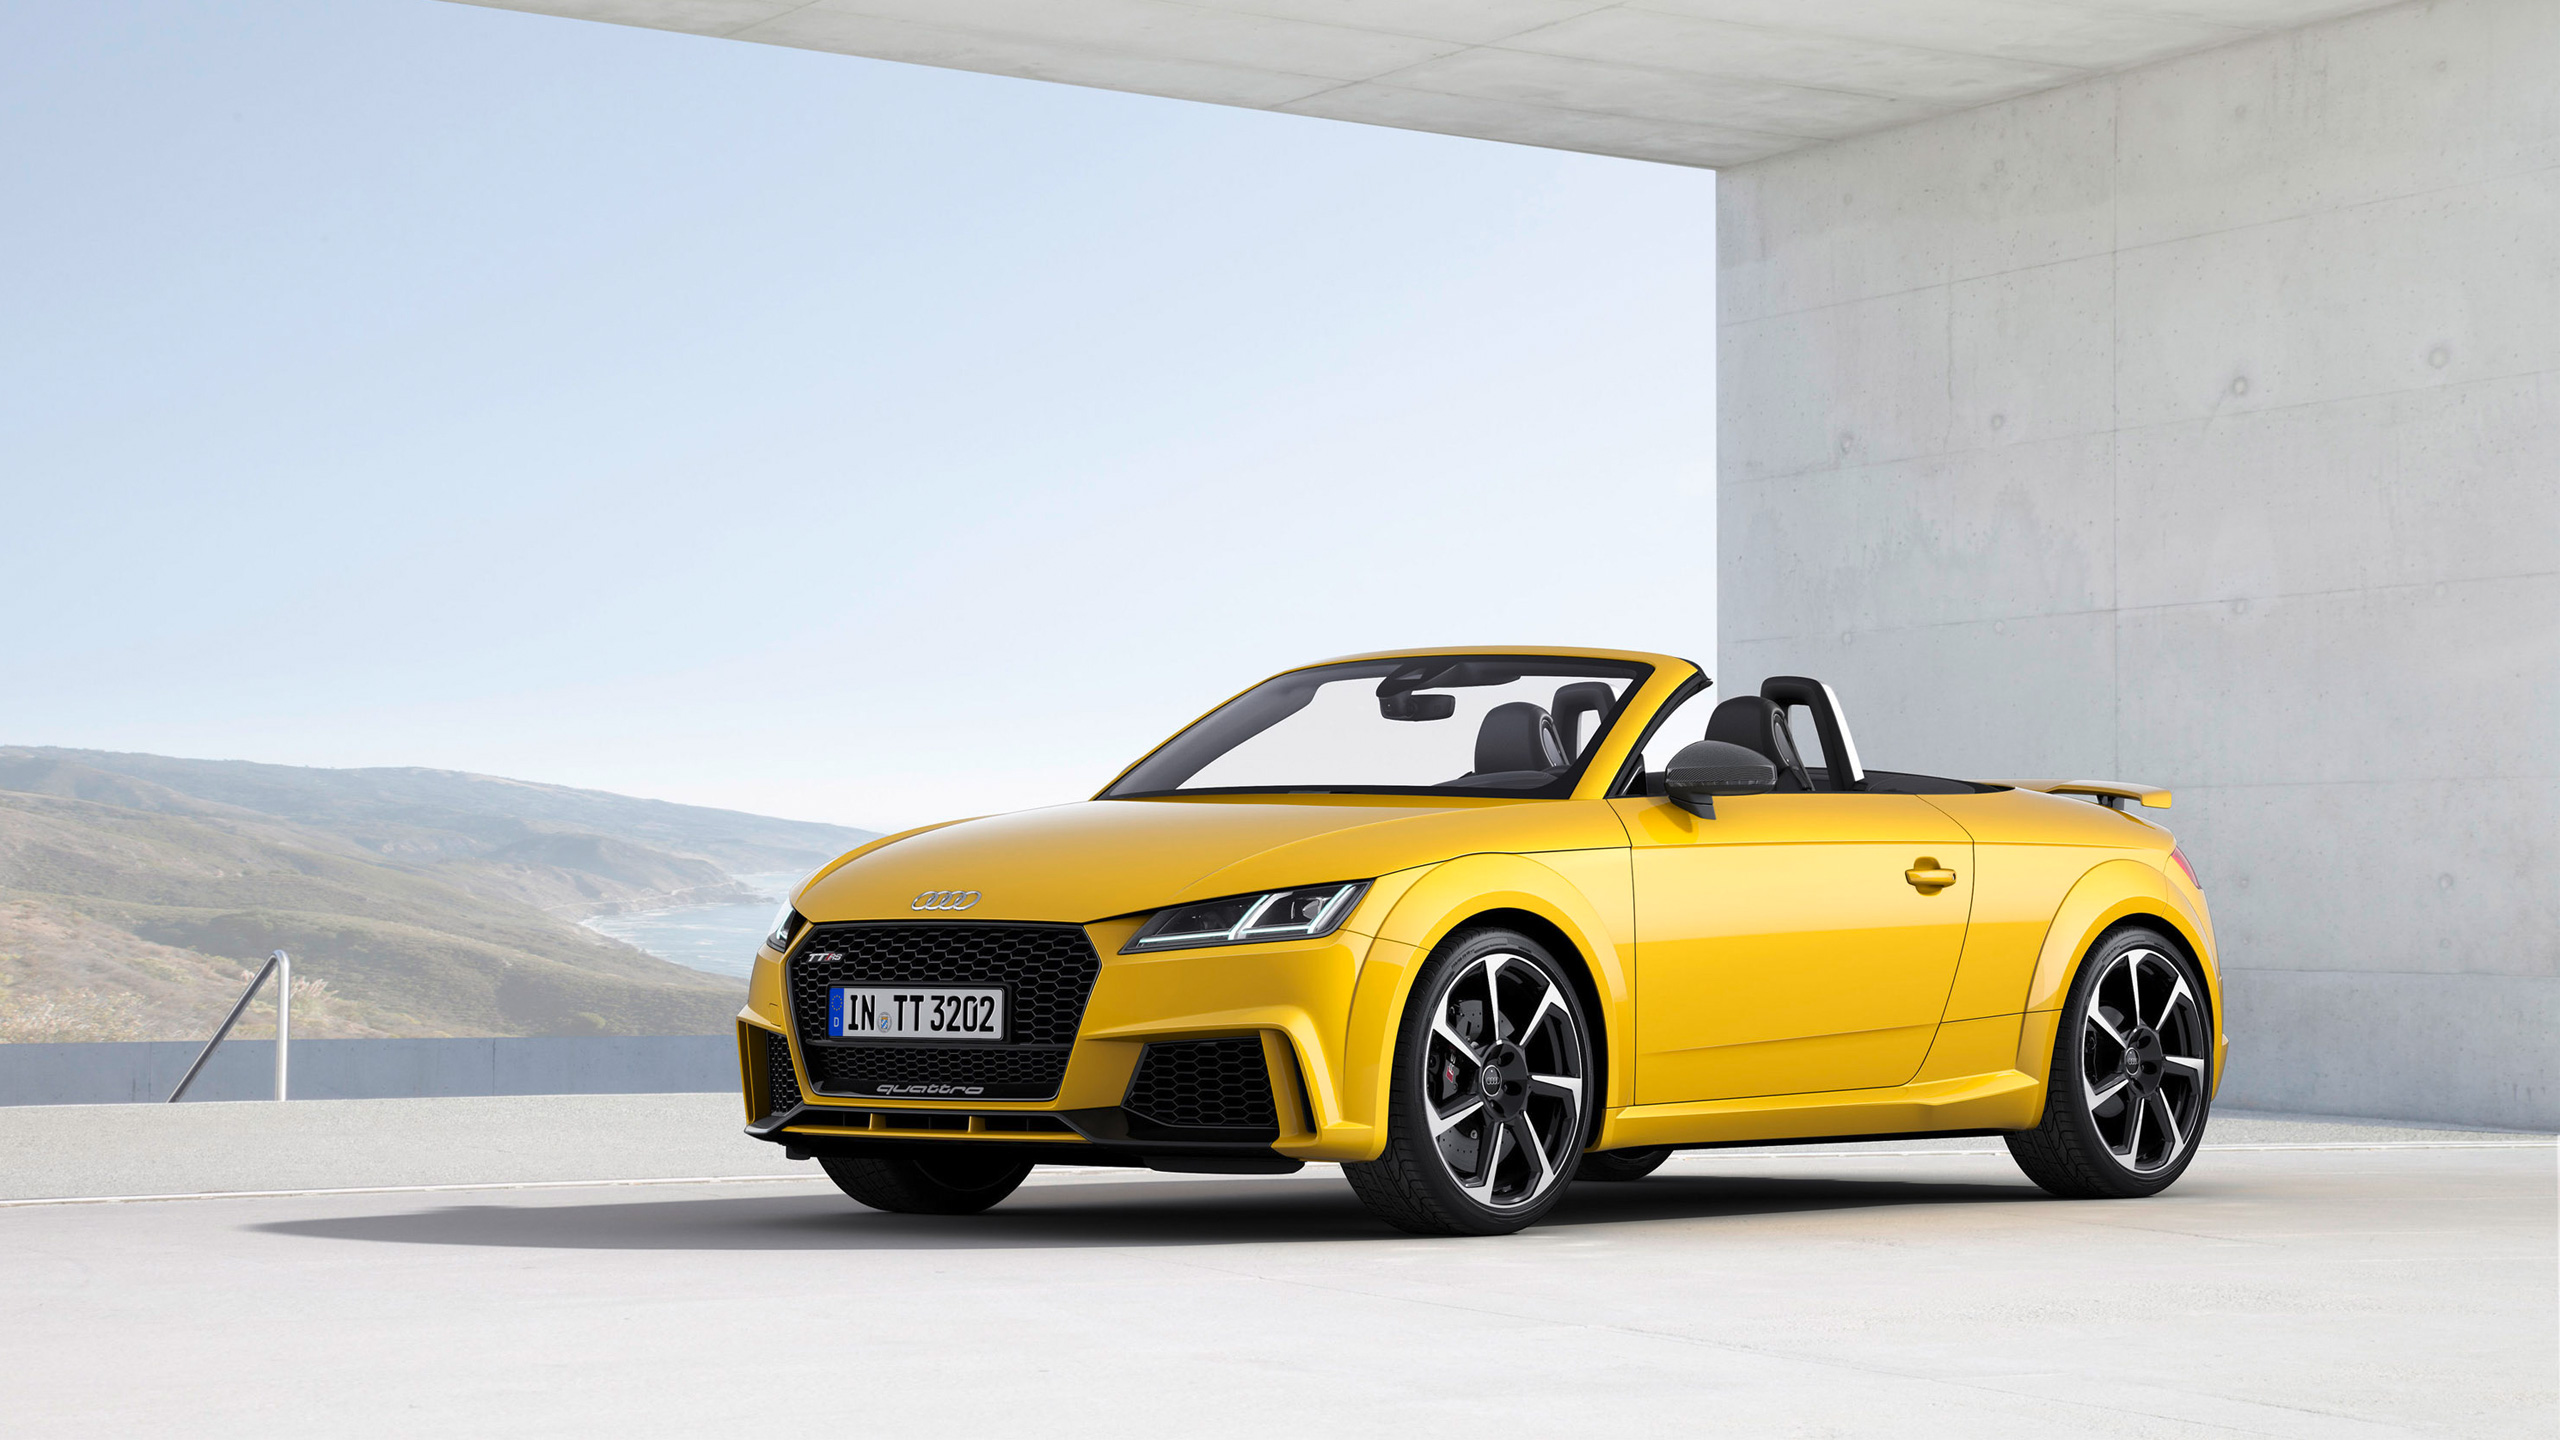 2017 Audi TT RS Roadster 4 Wallpaper | HD Car Wallpapers ...